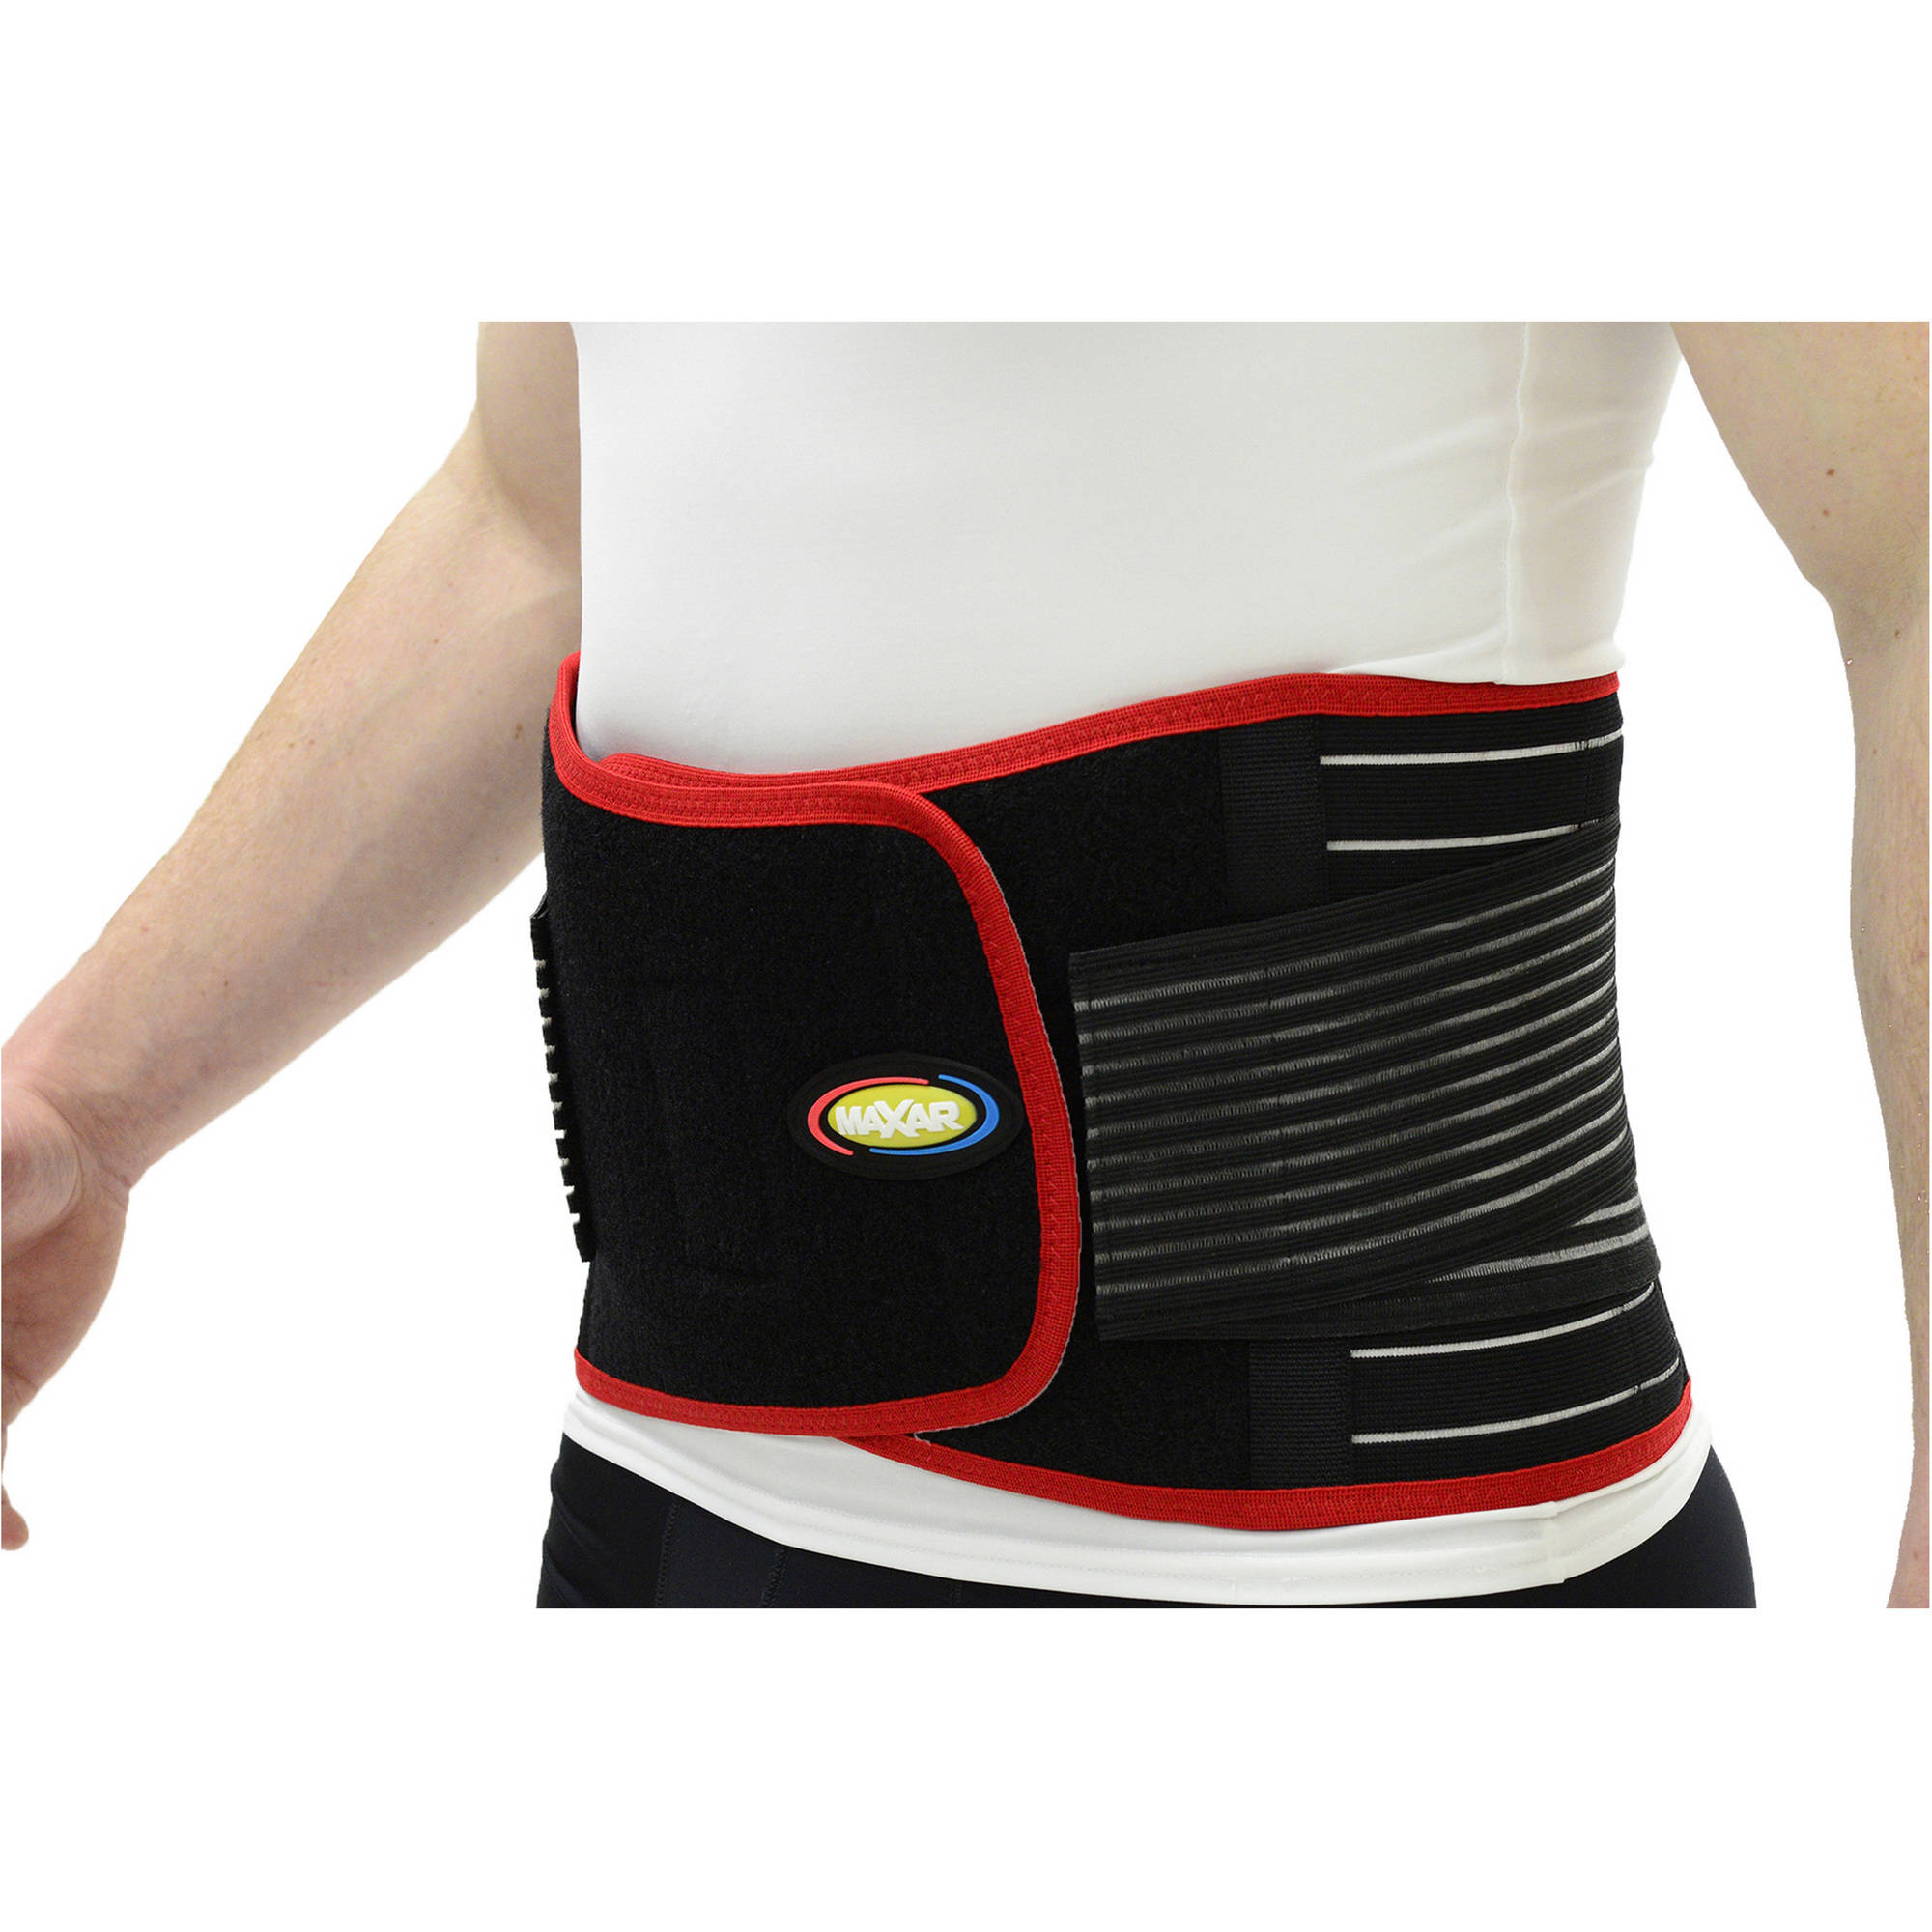 MAXAR Bio-Magnetic Back Support Belt: BMS-512